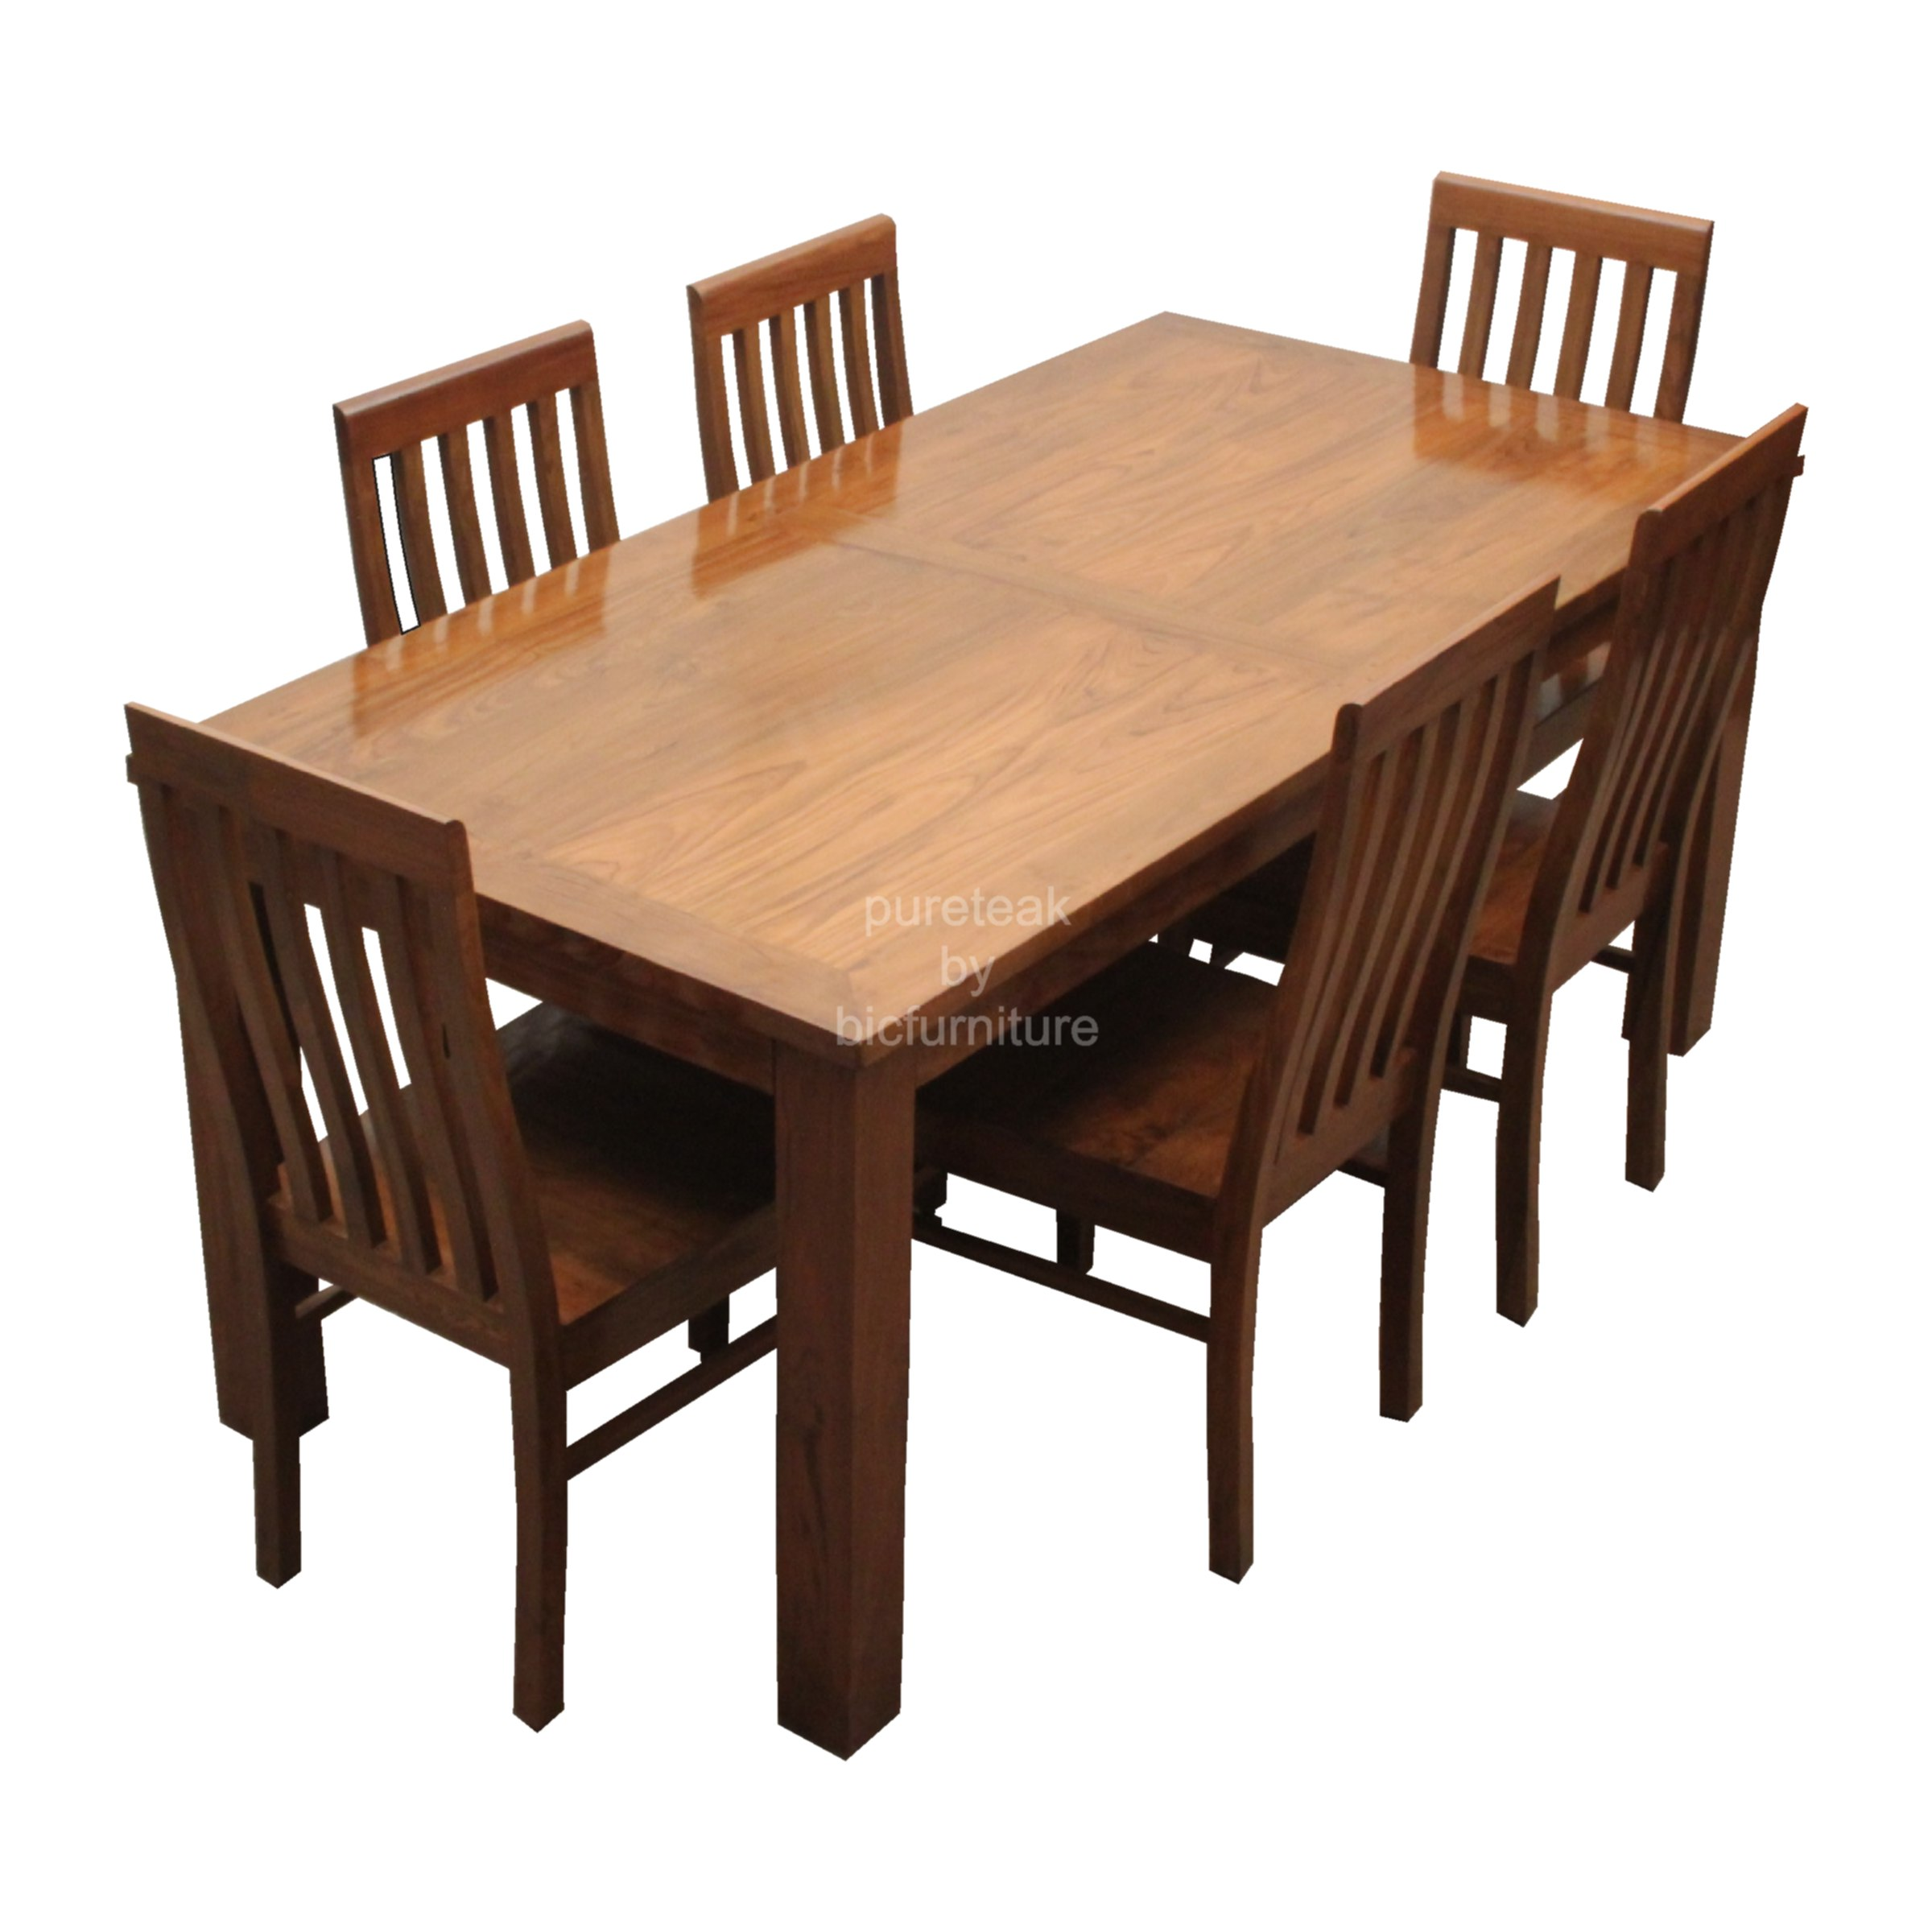 Natural Finish 6 Seater Dining Set In Teakwood